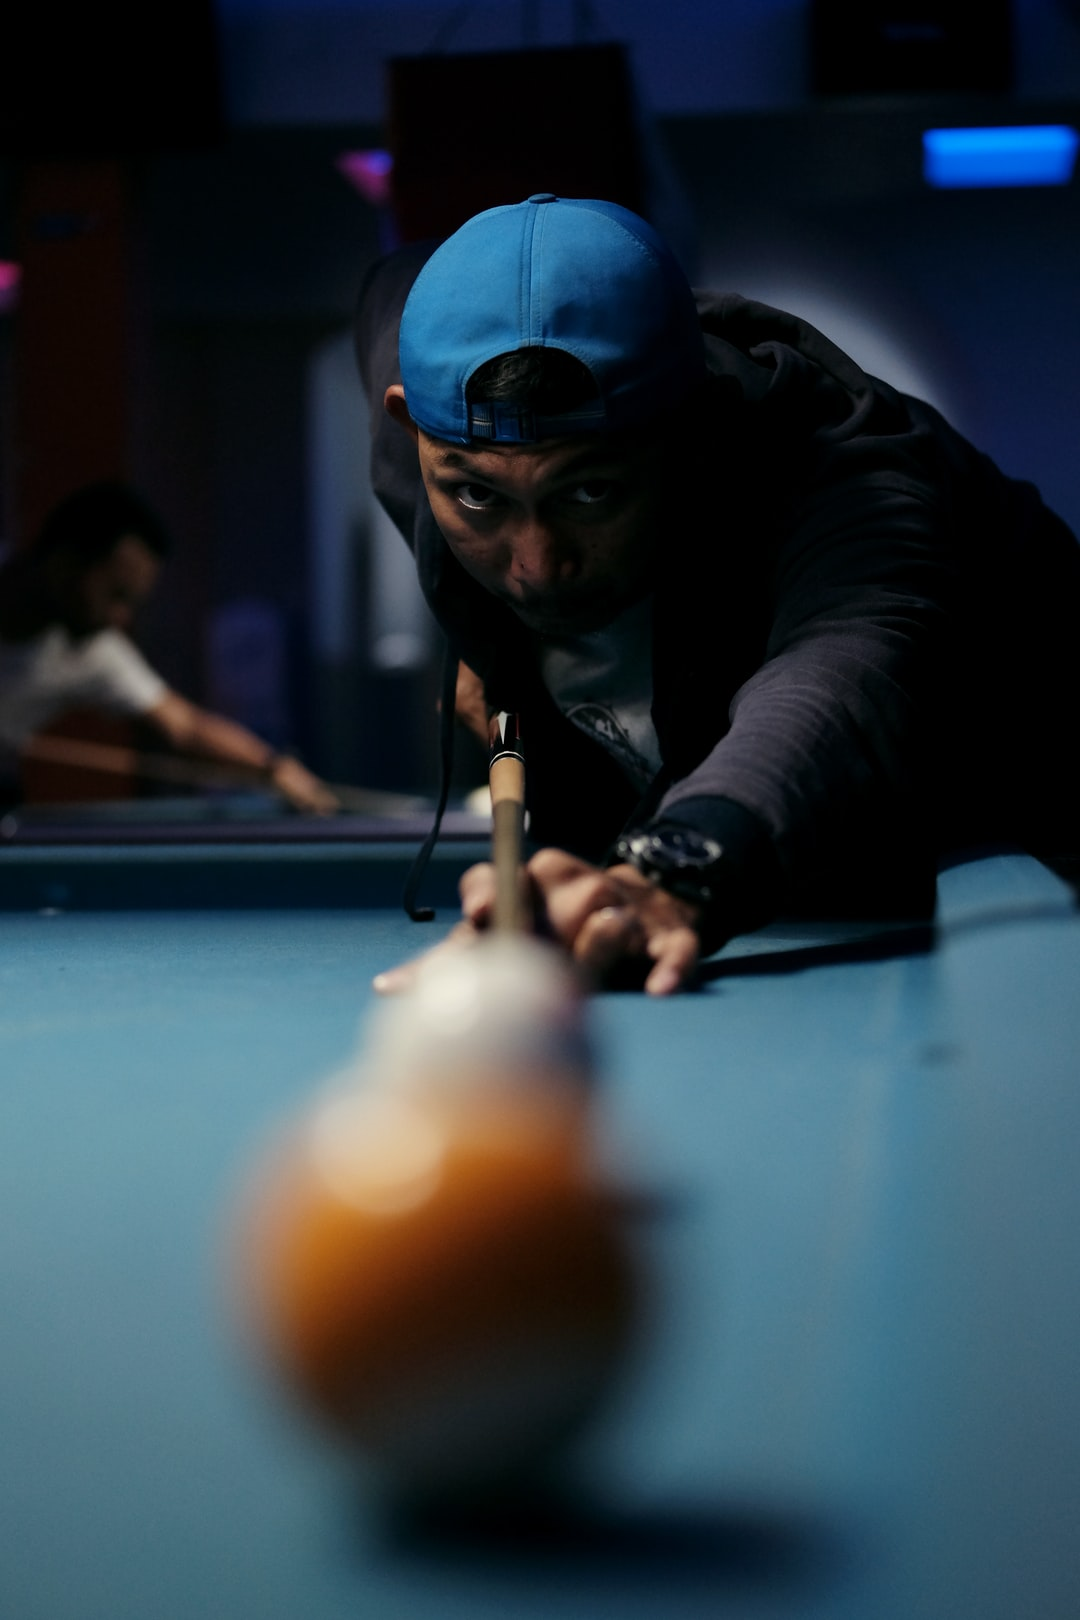 Man concentrate to shoot his 9 ball